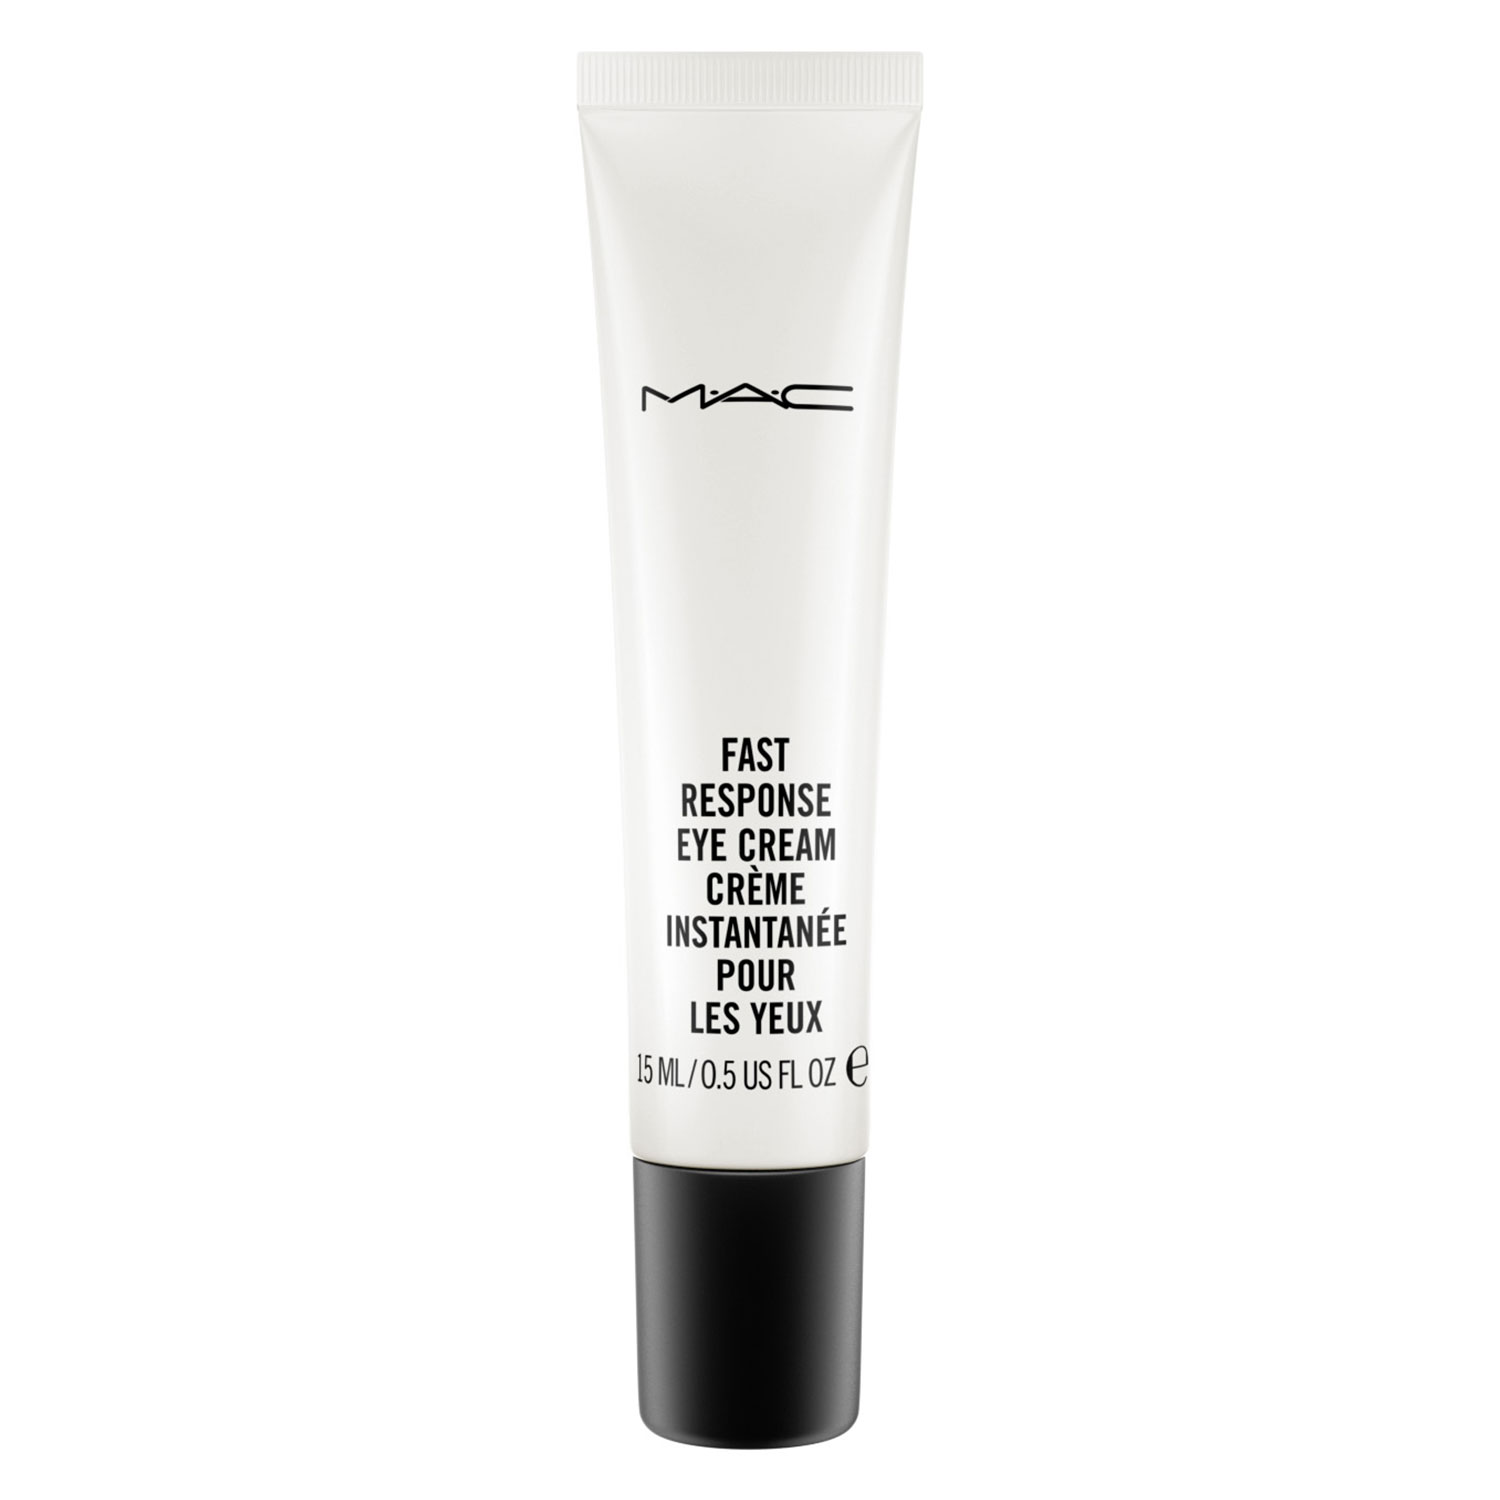 M·A·C Skin Care - Fast Response Eye Cream